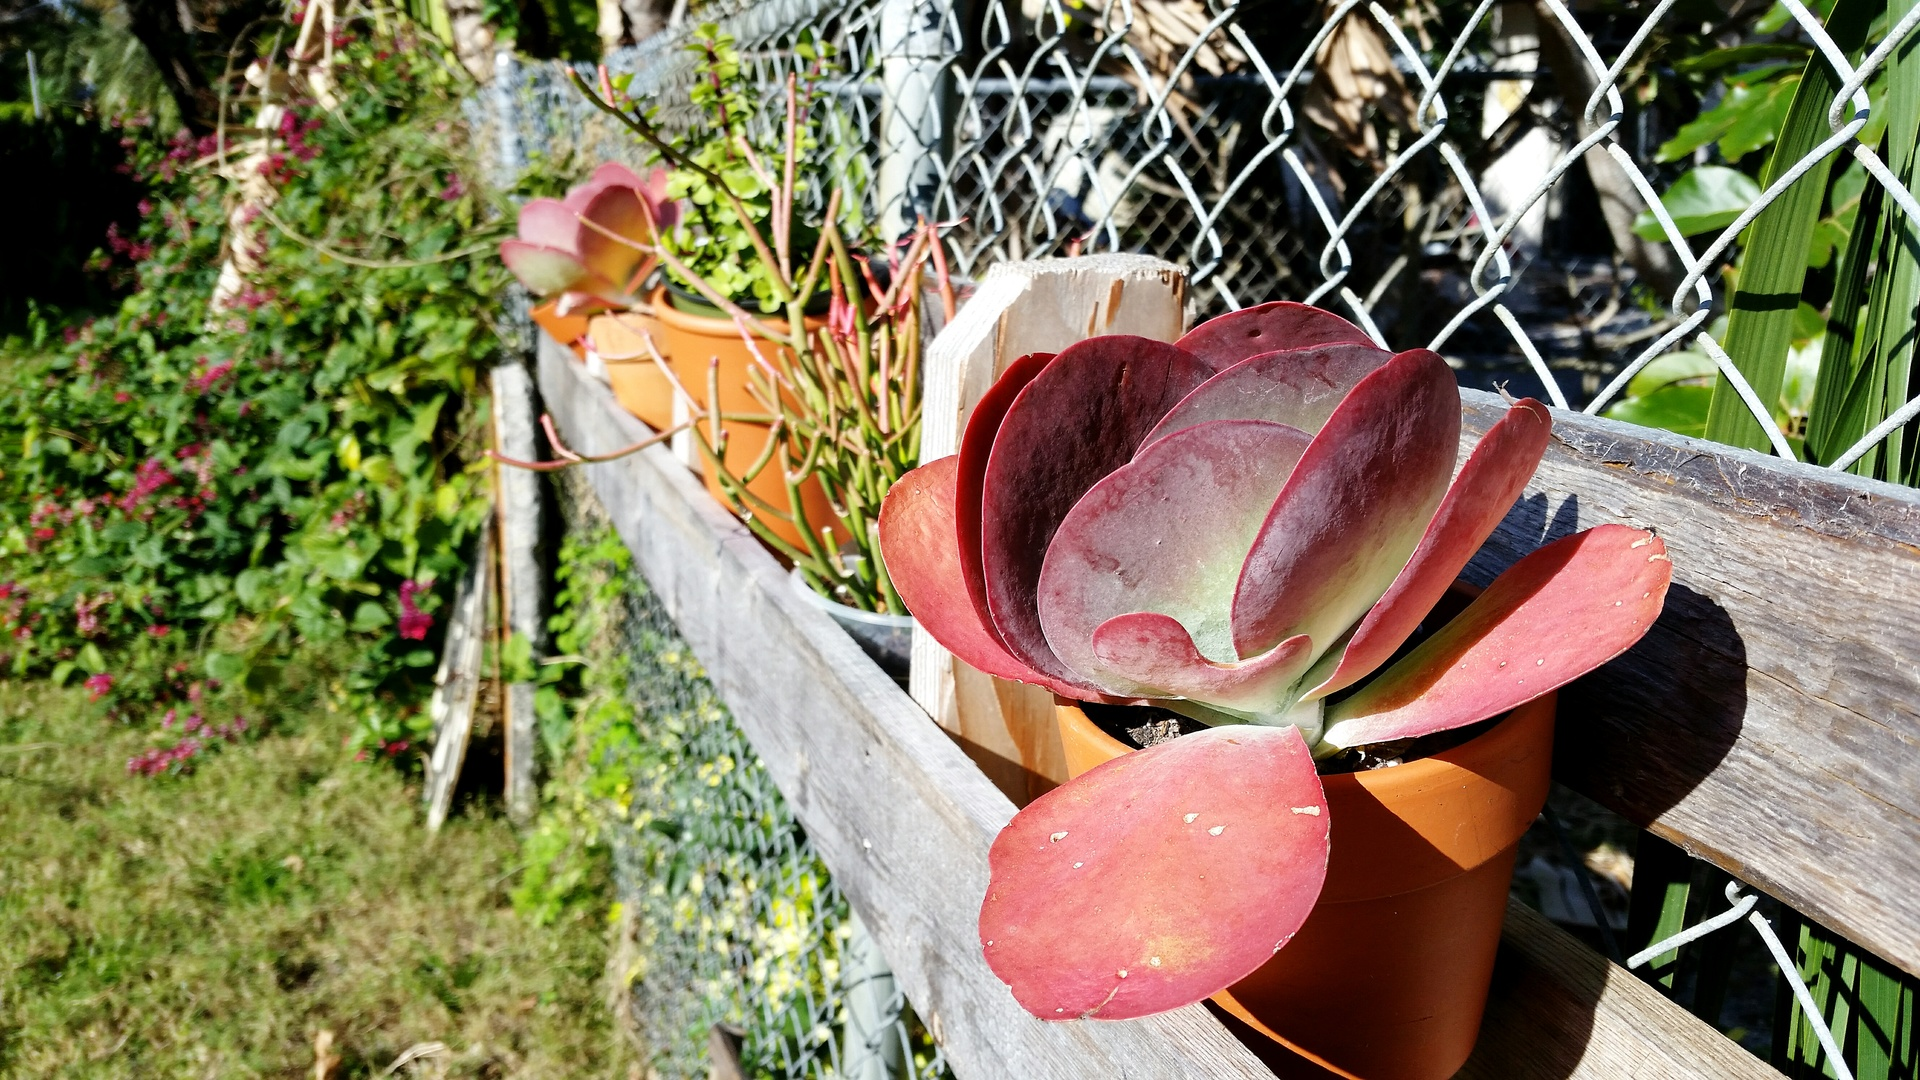 Foap Potted succulent plants along a chain link fence stock